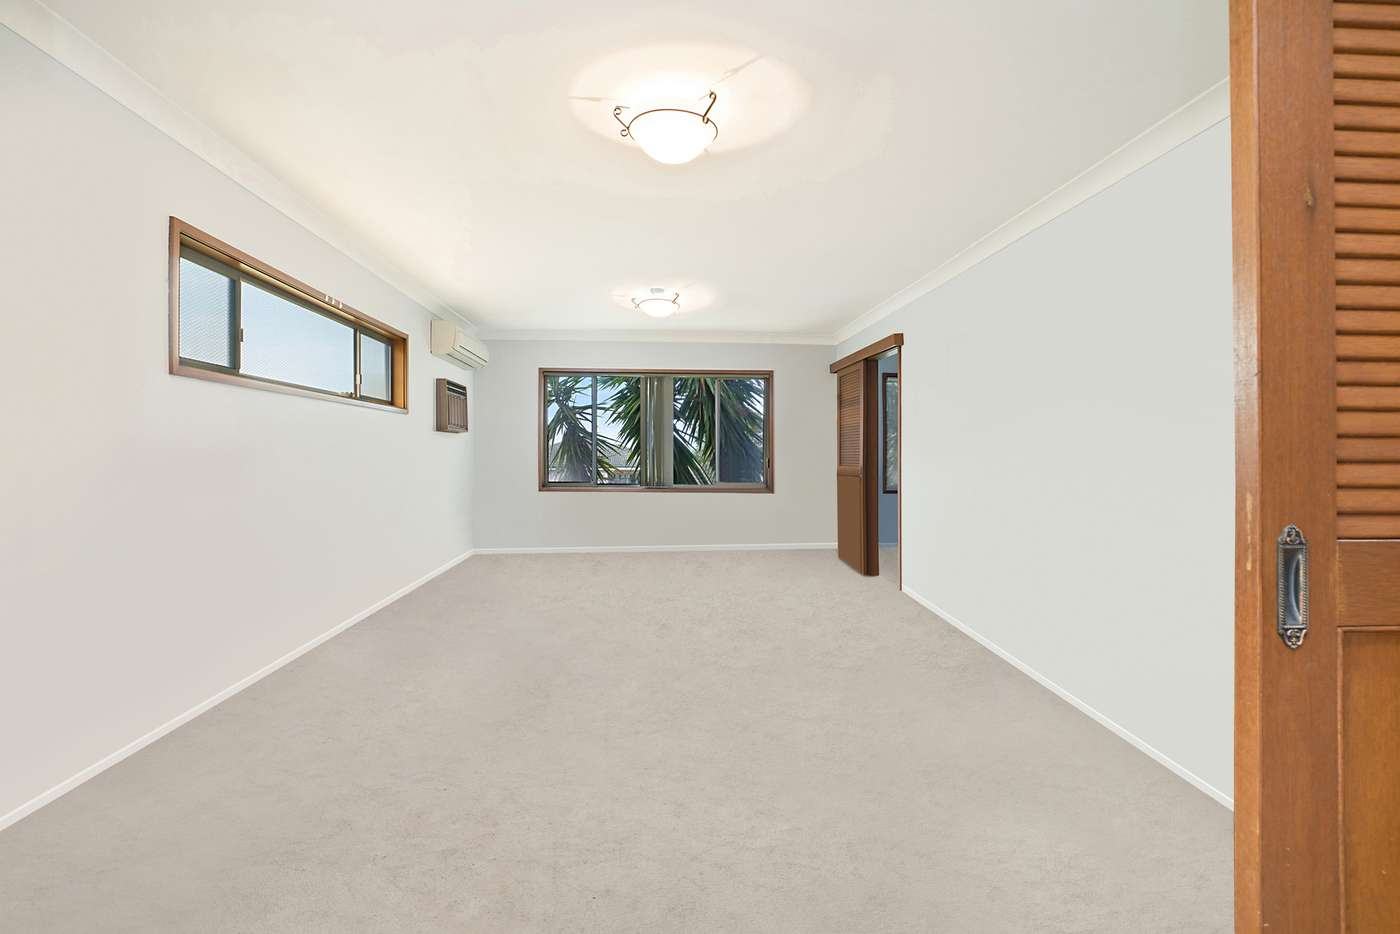 Fifth view of Homely house listing, 17 Hawkins Street, New Lambton NSW 2305